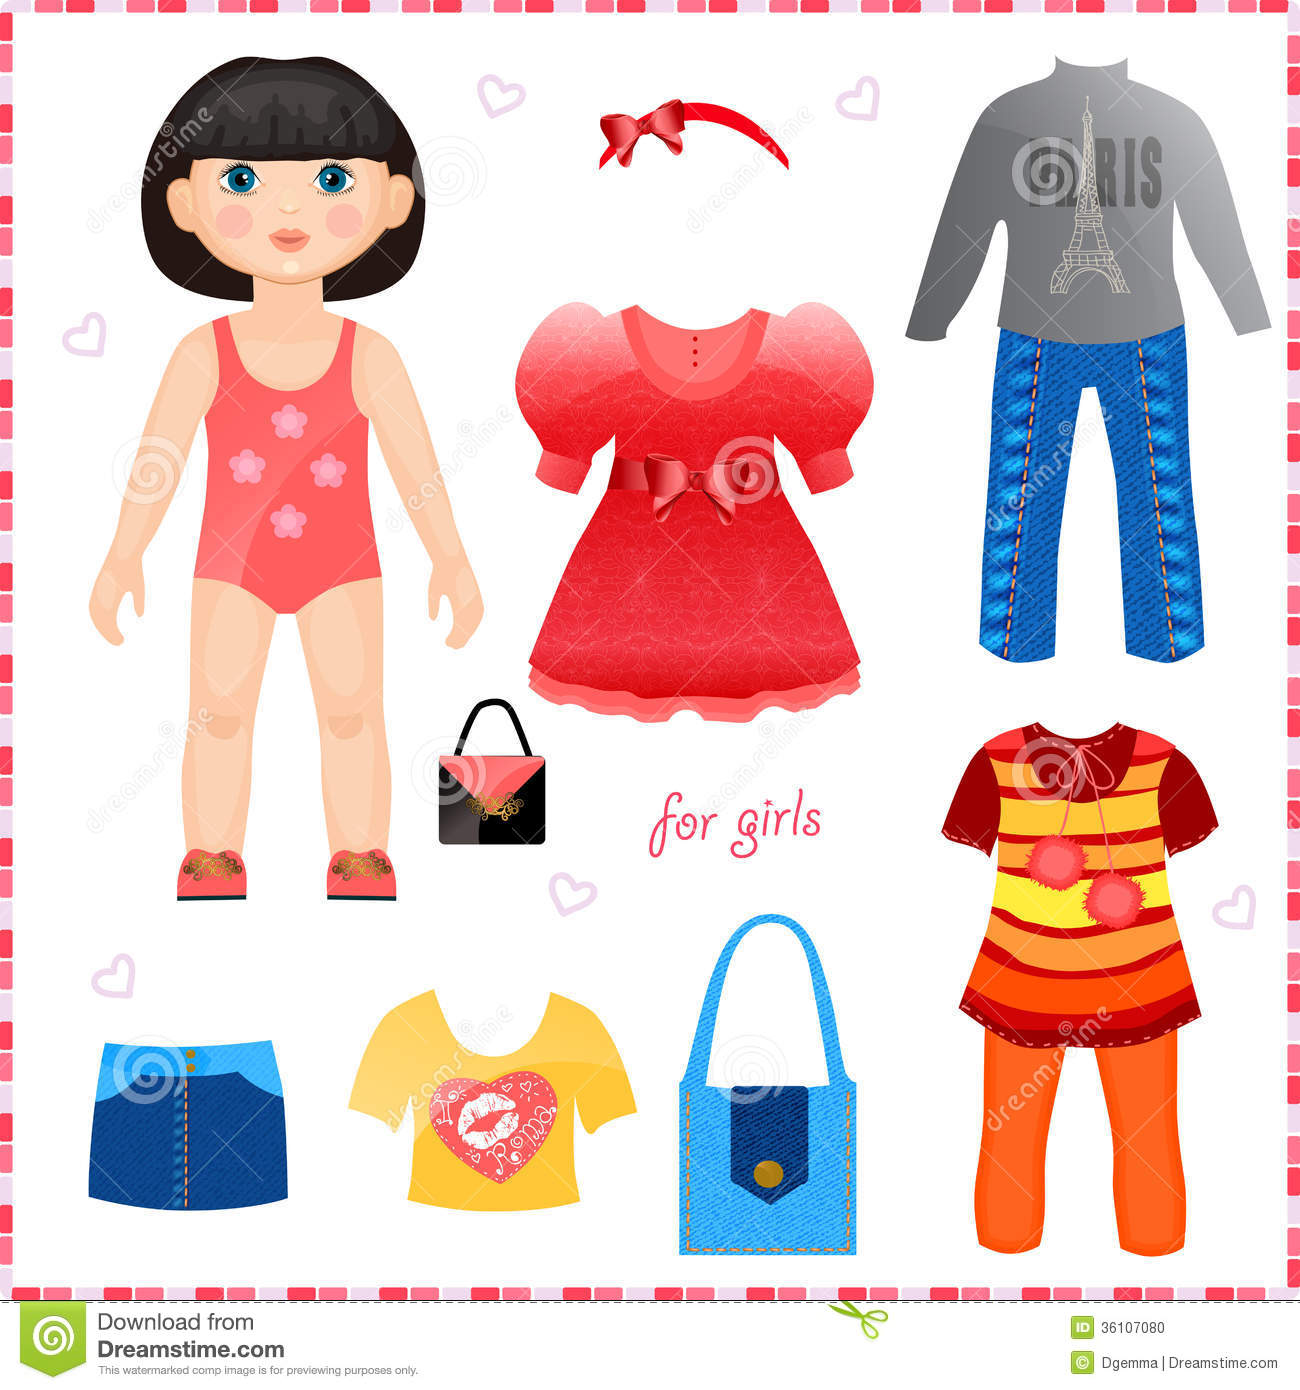 Doll clipart doll clothes Doll Clipart Clothes Clipart Clothes